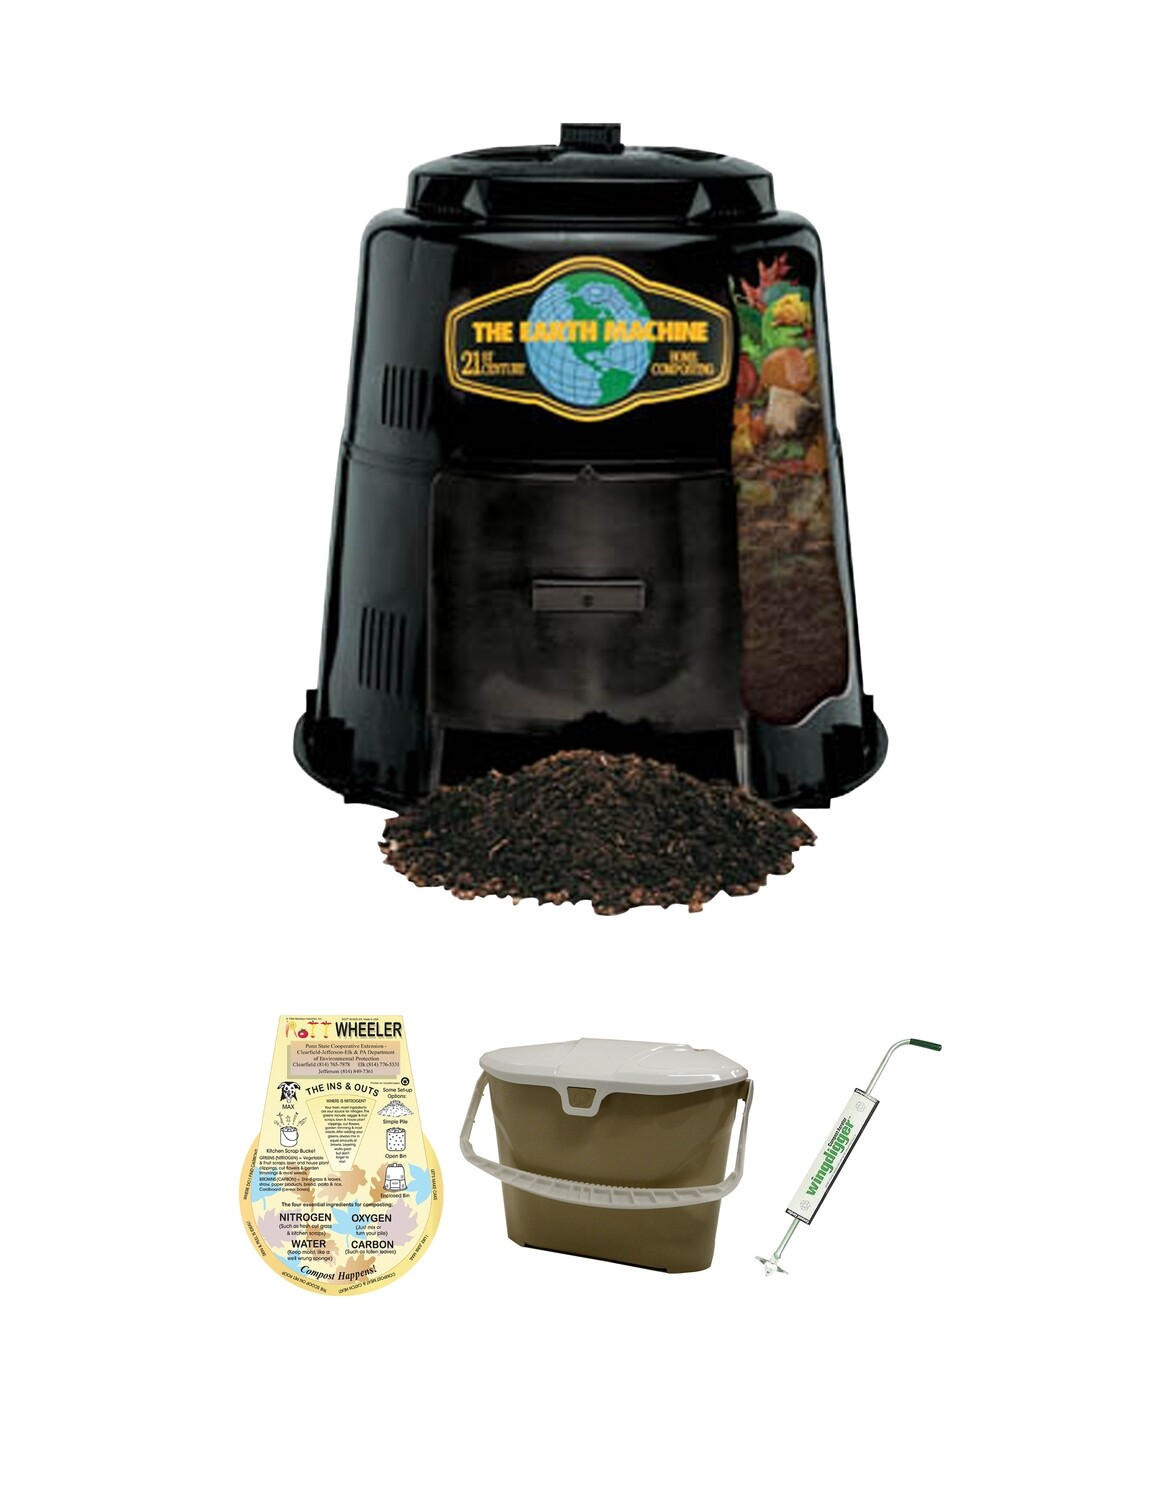 KIT 2: Includes the Earth Machine, Rottwheeler, Kitchen Collector & Wingdigger